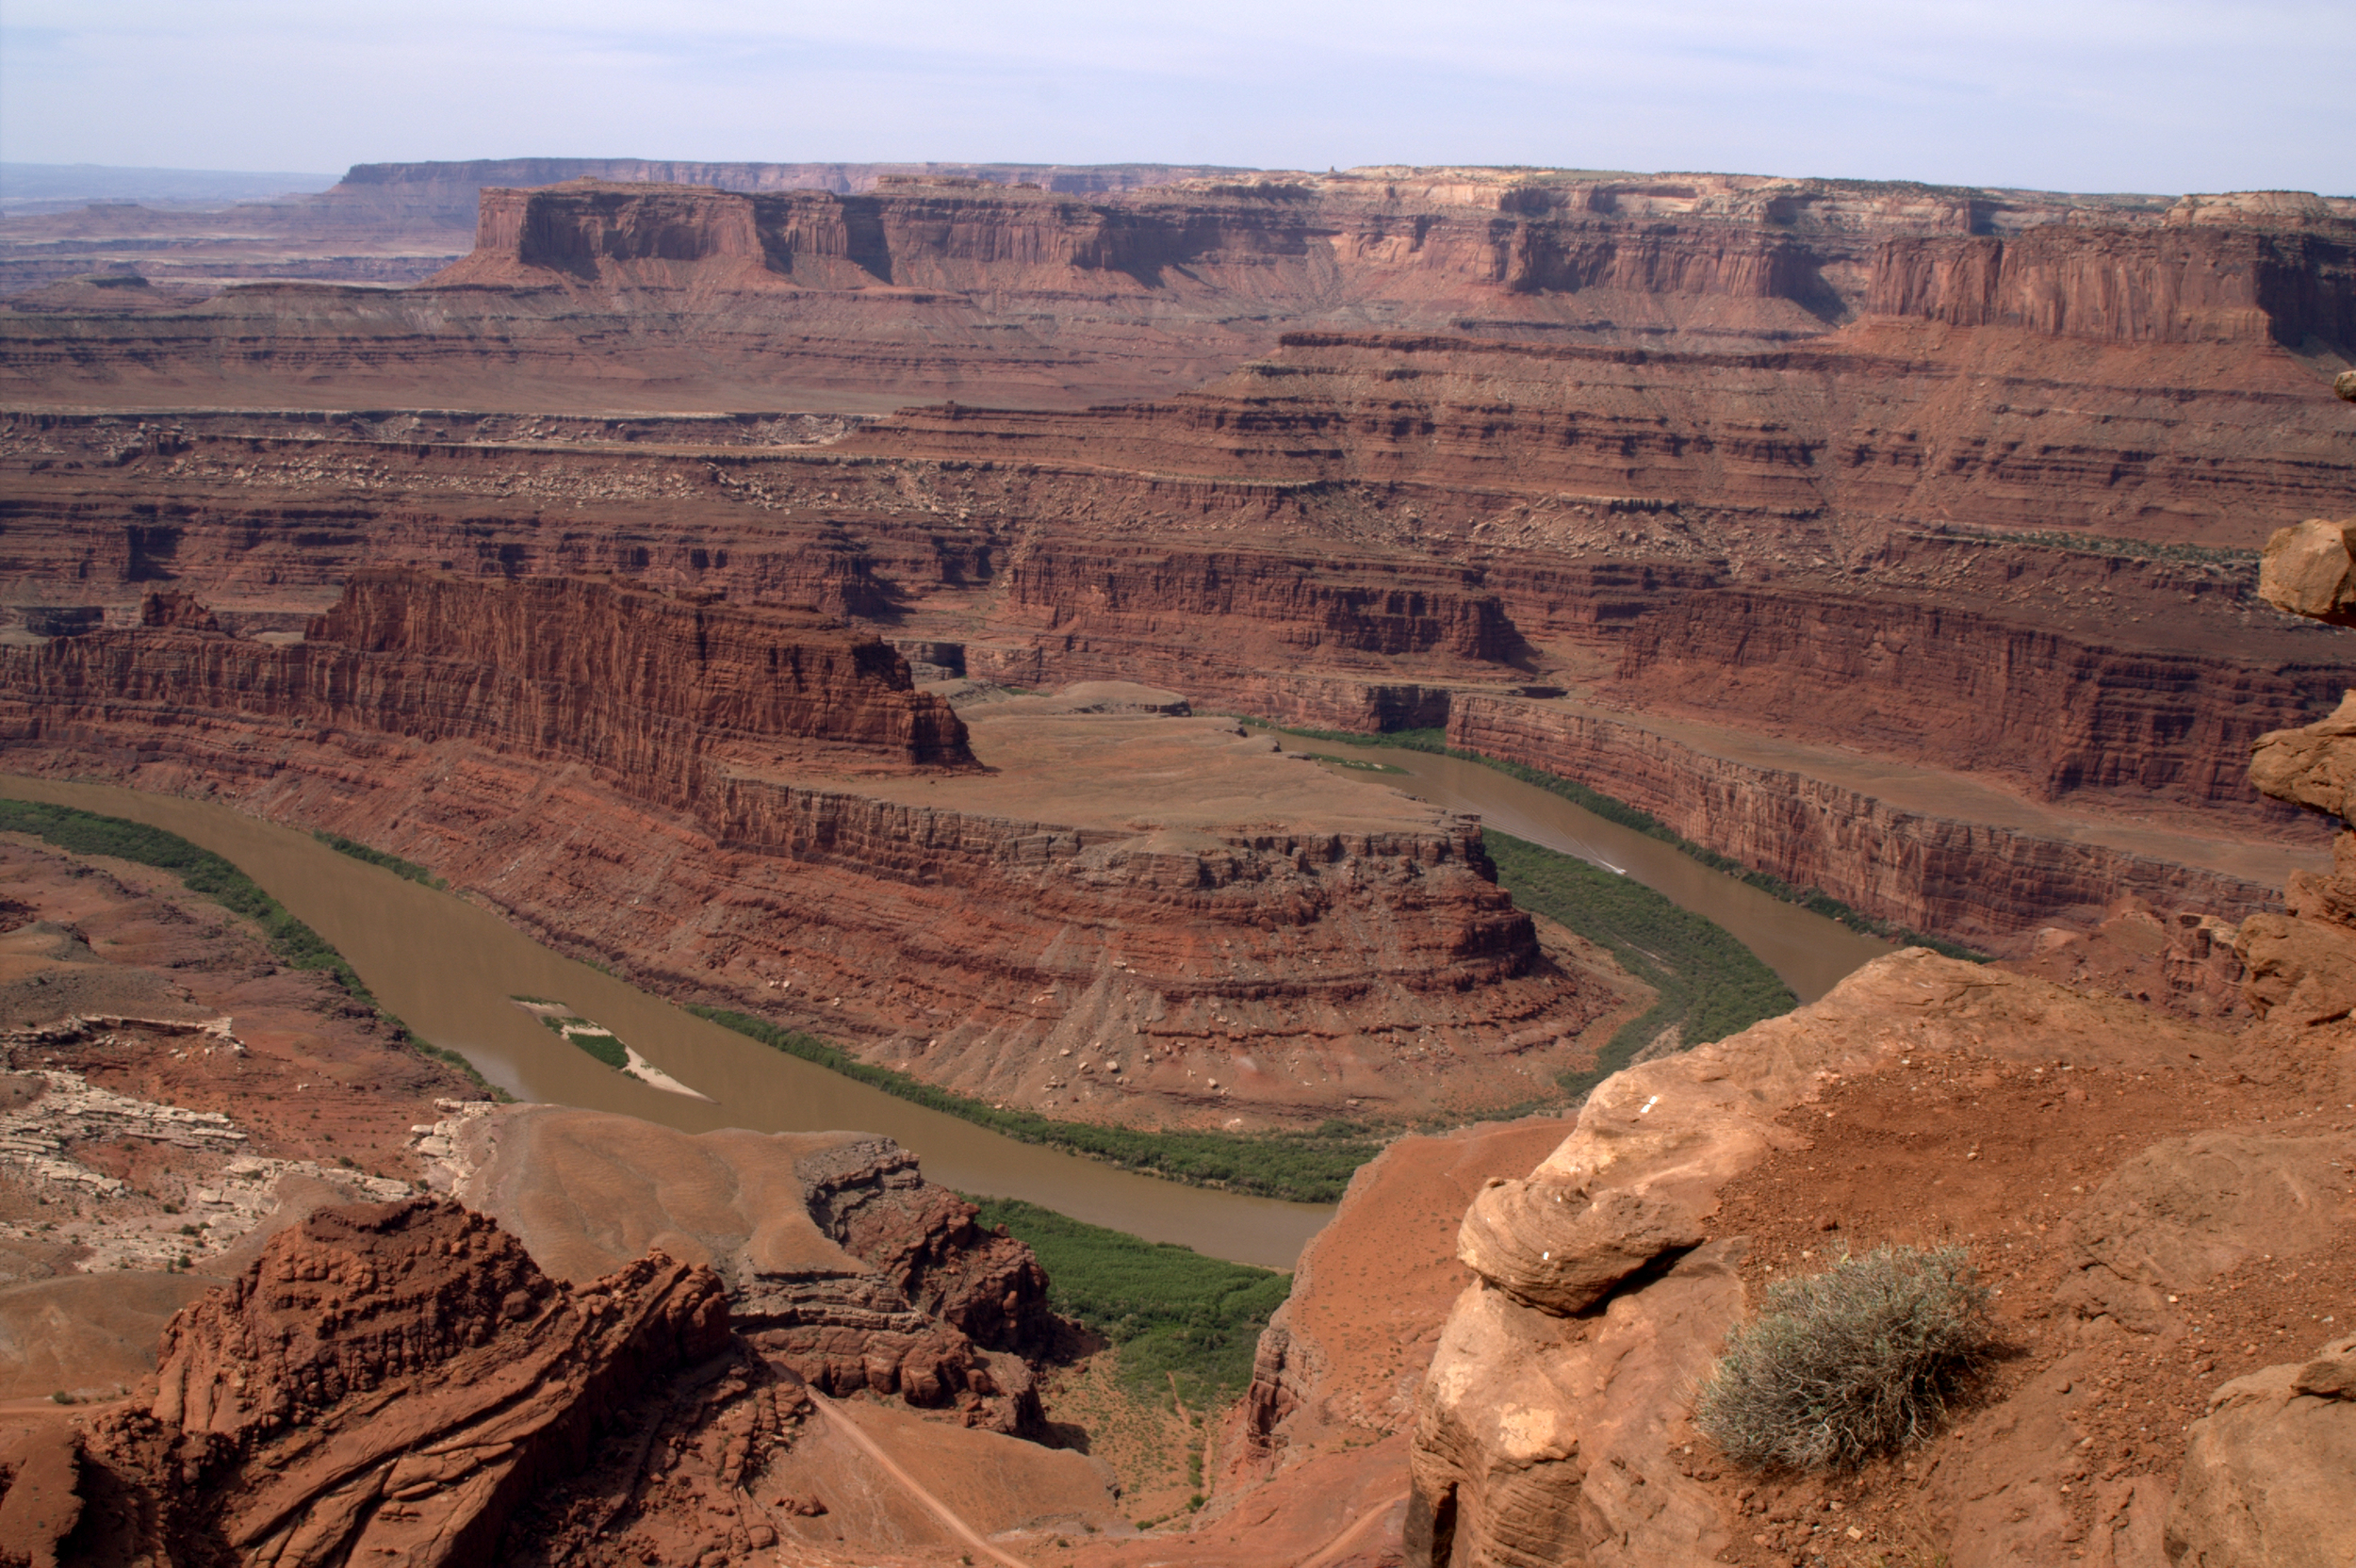 Moab's Dead Horse Point, a dramatic landscape featured in the final scene of  Thelma & Louise  - image via  Google .